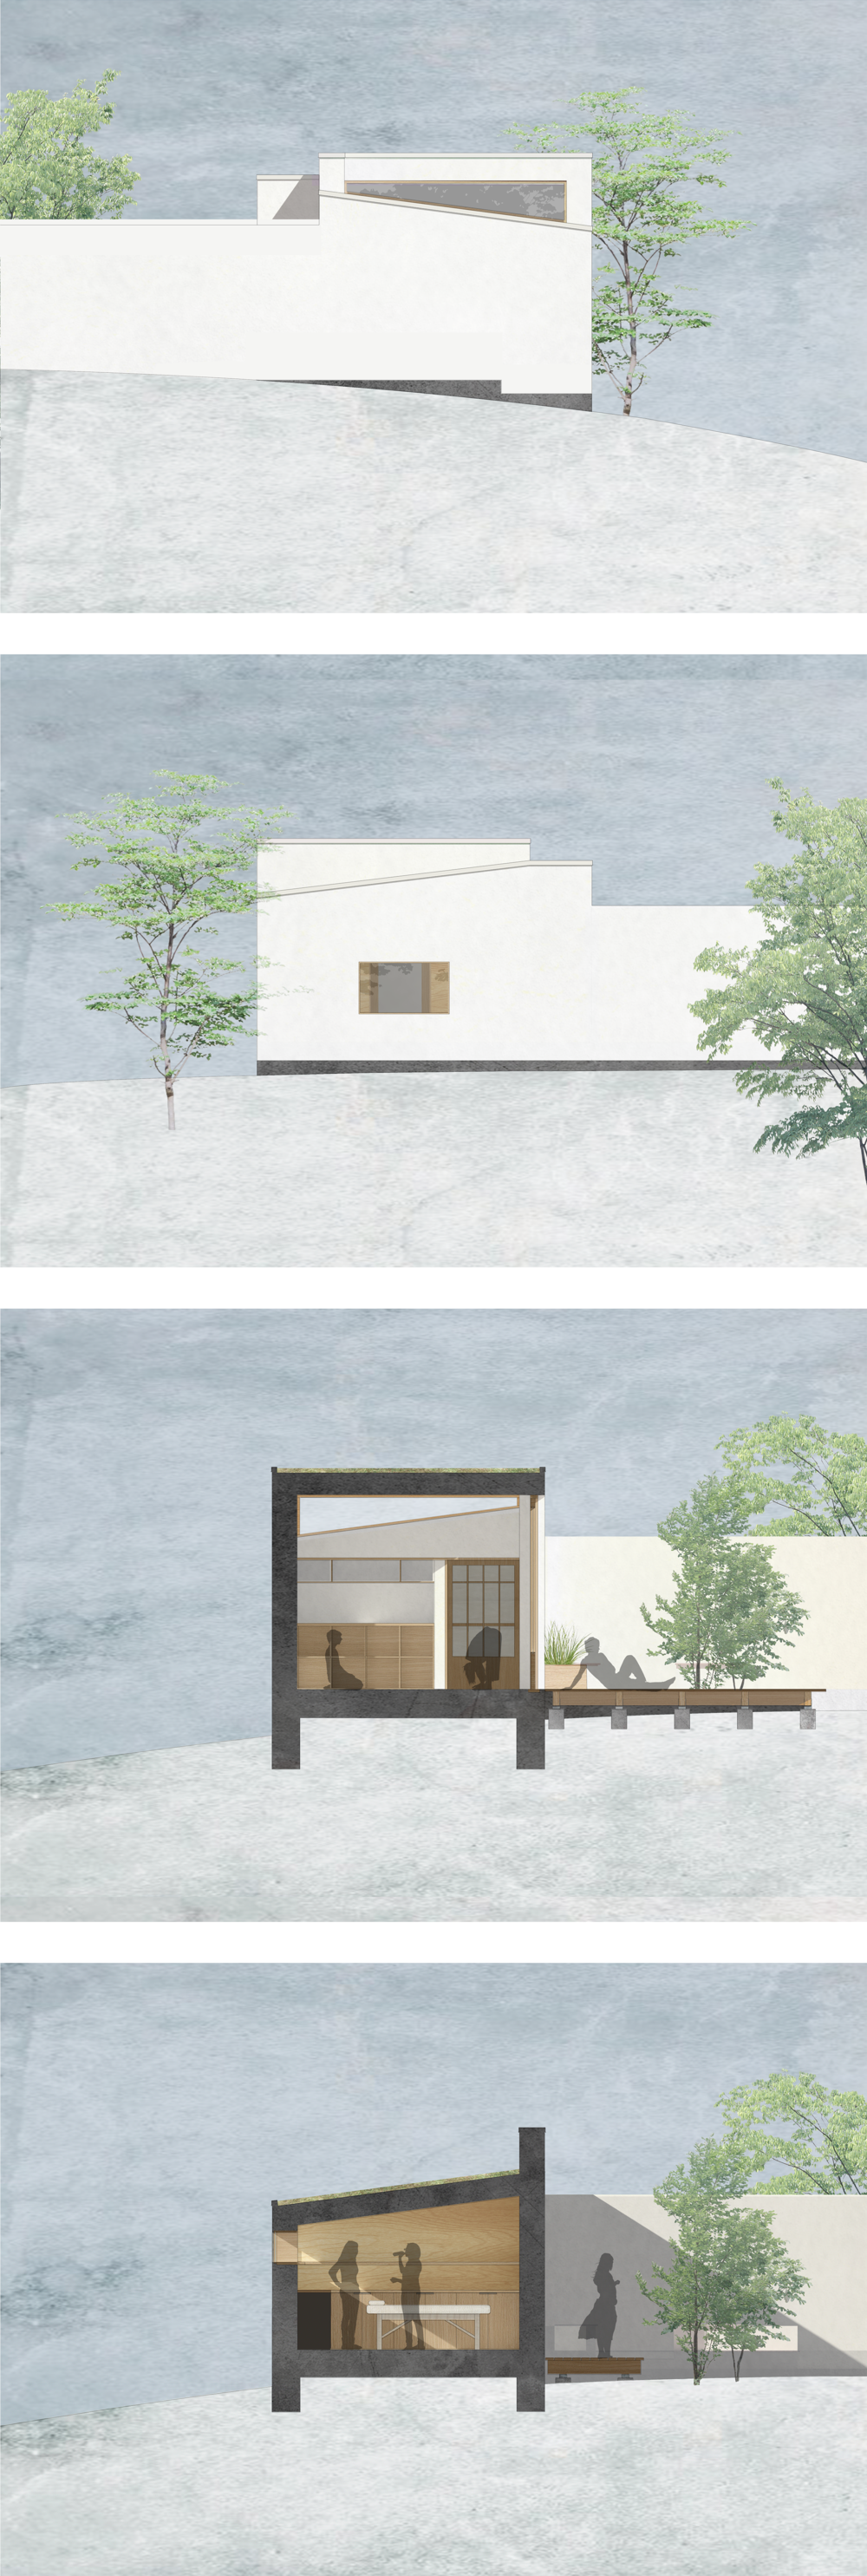 Røntofte Annex facades and sections, Megan Blake, 2017.